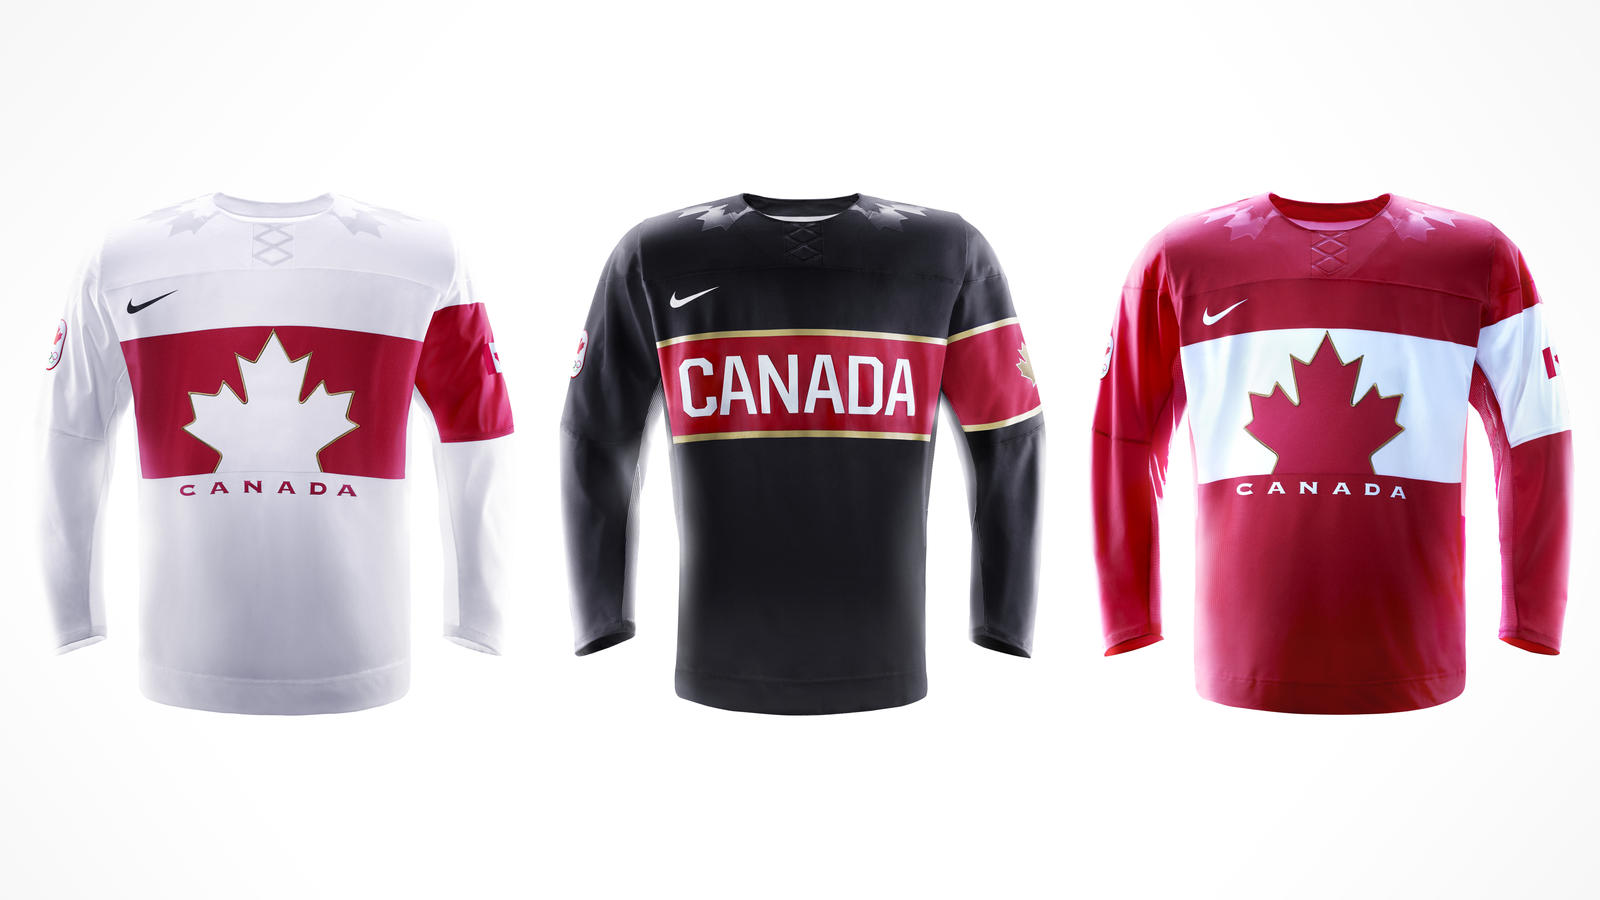 62ca2b51 Hockey Canada and Nike unveil Team Canada jersey for 2014 Winter ...